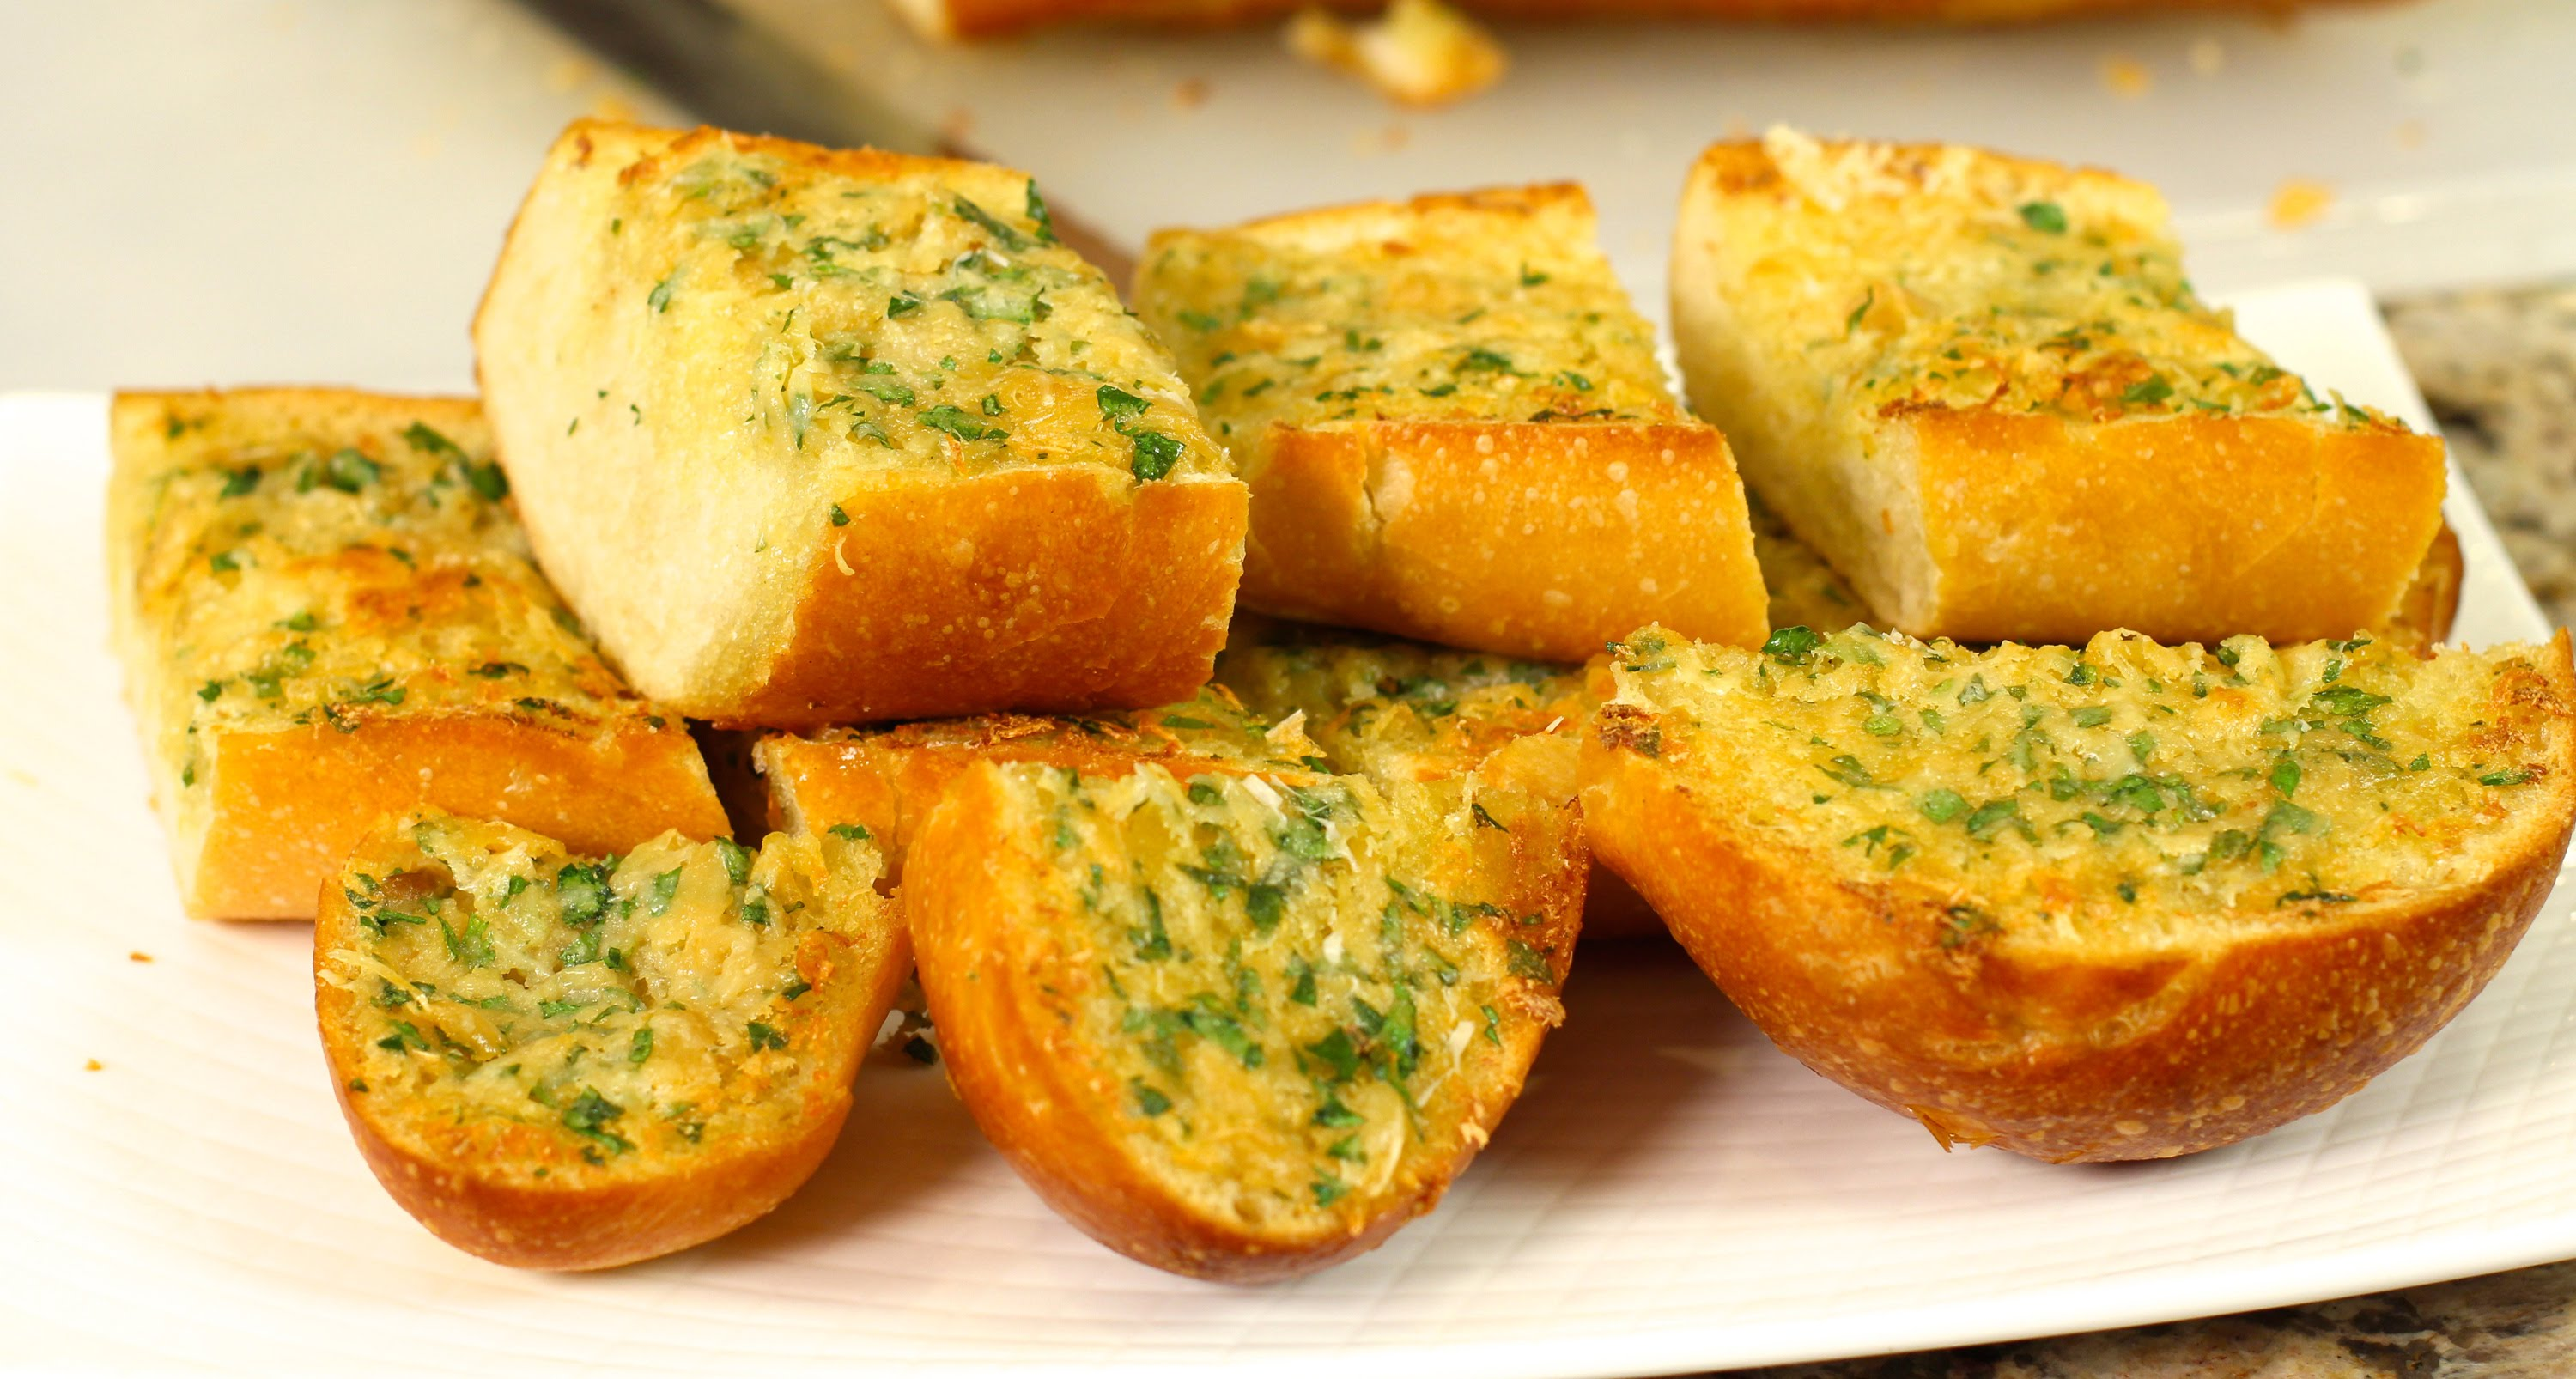 Garlic Breads